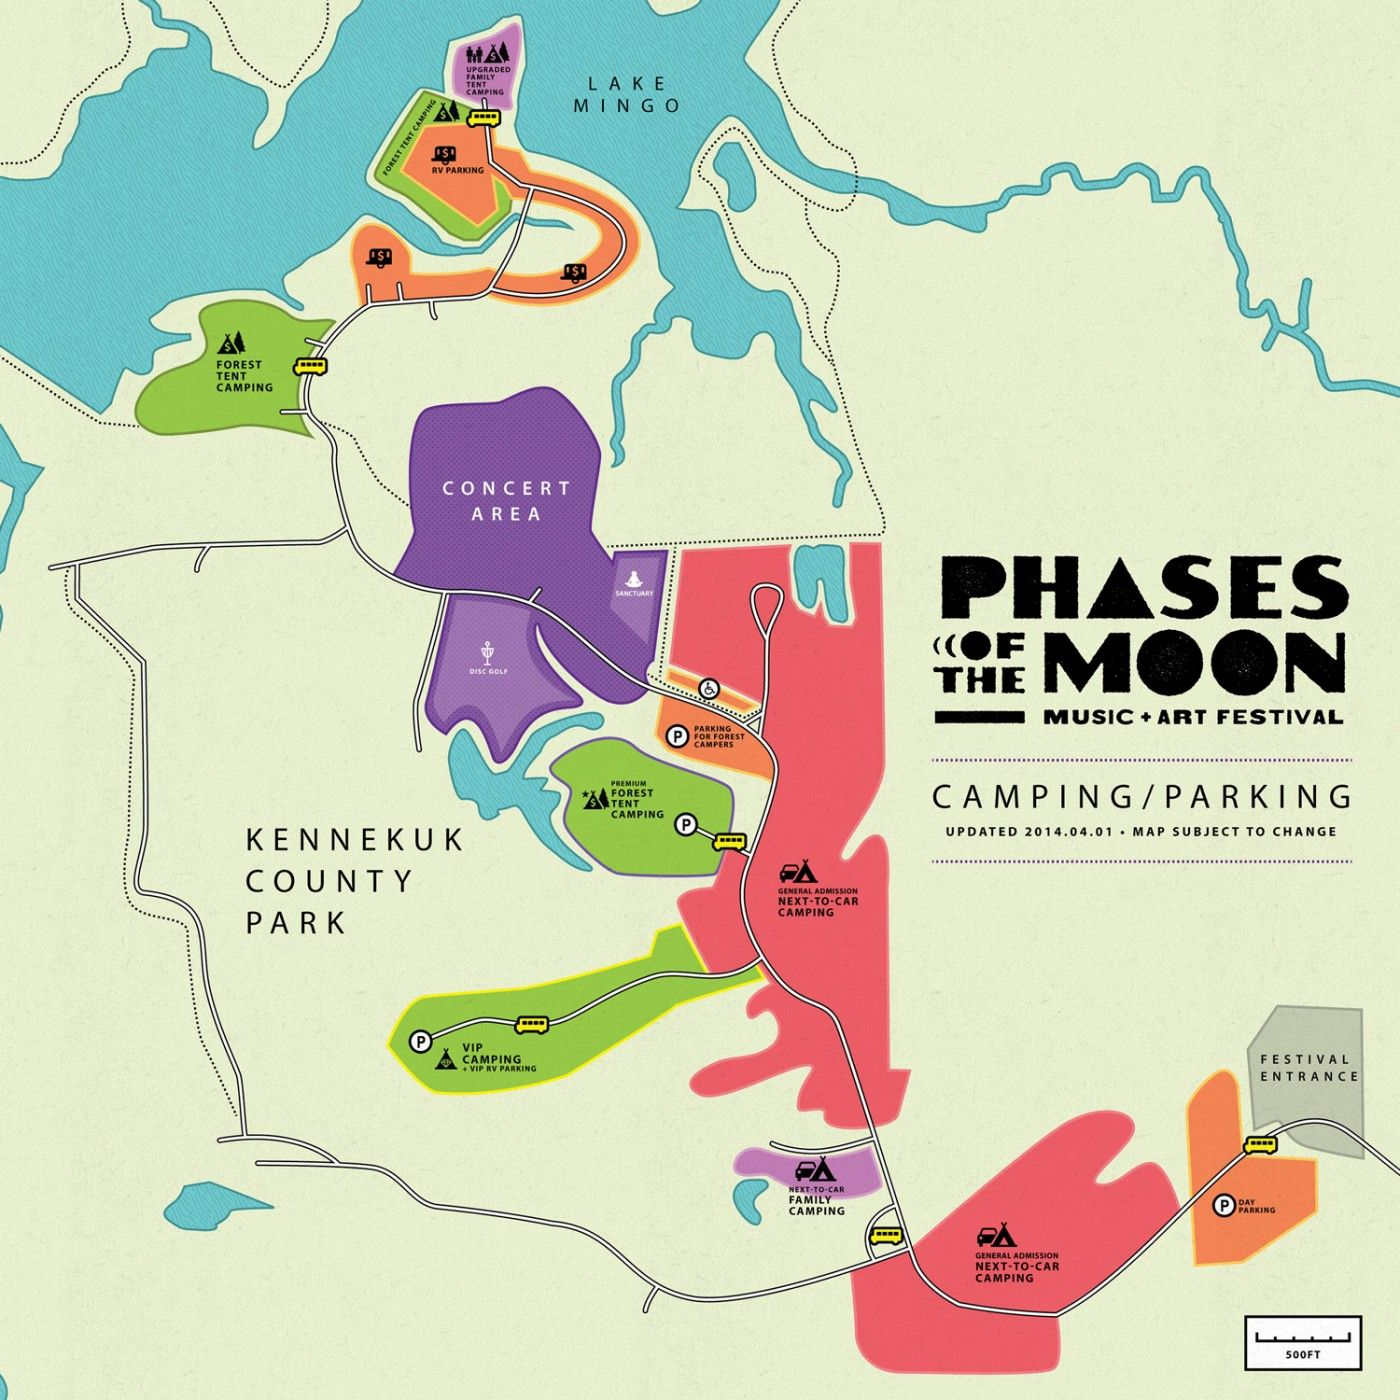 Map - Phases of the Moon Music + Art Festival